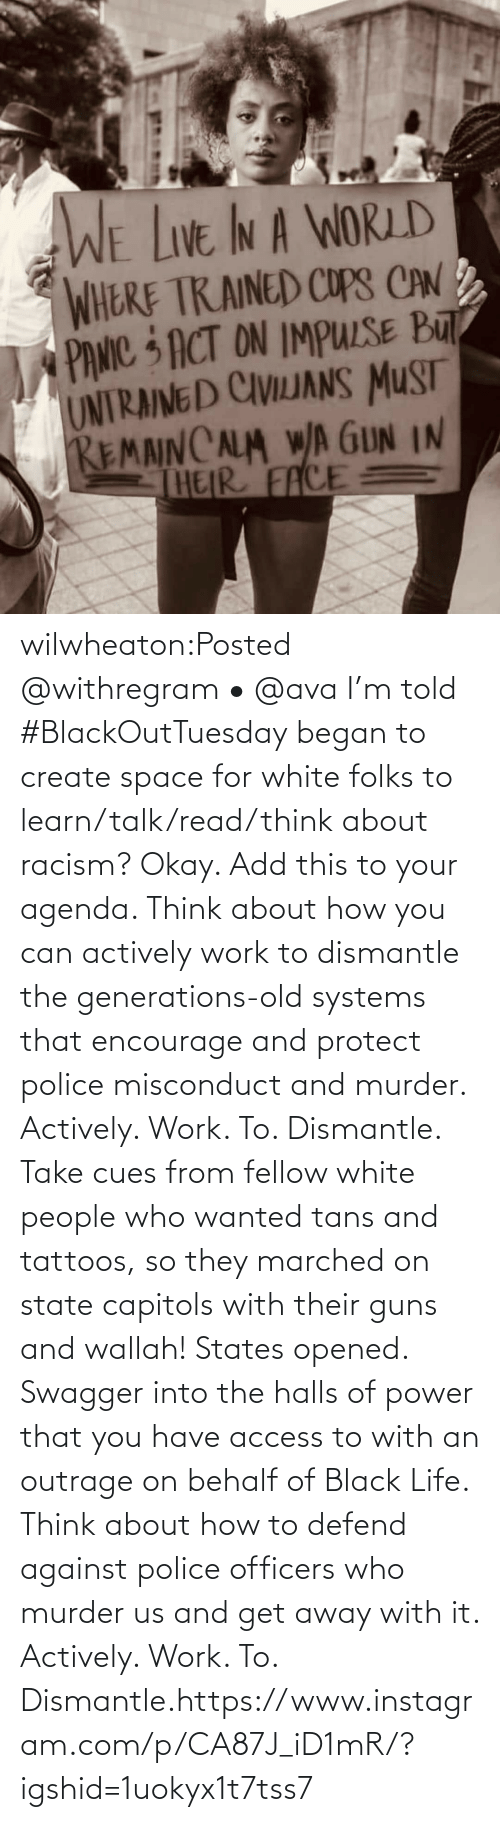 wanted: wilwheaton:Posted @withregram • @ava I'm told #BlackOutTuesday began to create space for white folks to learn/talk/read/think about racism? Okay. Add this to your agenda. Think about how you can actively work to dismantle the generations-old systems that encourage and protect police misconduct and murder. Actively. Work. To. Dismantle. Take cues from fellow white people who wanted tans and tattoos, so they marched on state capitols with their guns and wallah! States opened. Swagger into the halls of power that you have access to with an outrage on behalf of Black Life. Think about how to defend against police officers who murder us and get away with it. Actively. Work. To. Dismantle.https://www.instagram.com/p/CA87J_iD1mR/?igshid=1uokyx1t7tss7